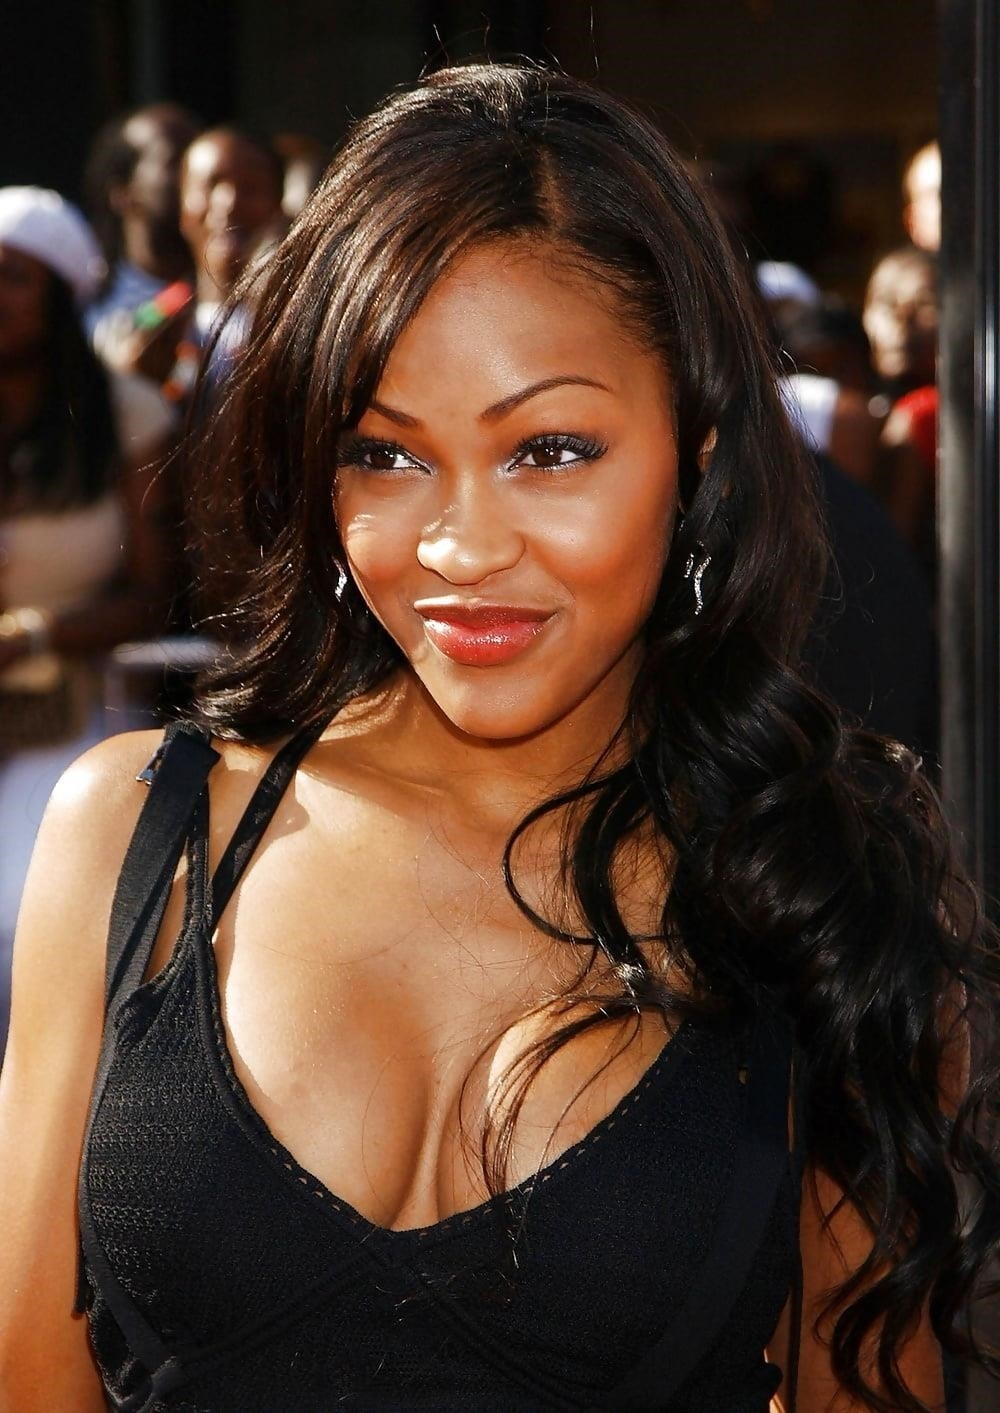 Meagan good nude pictures-6809